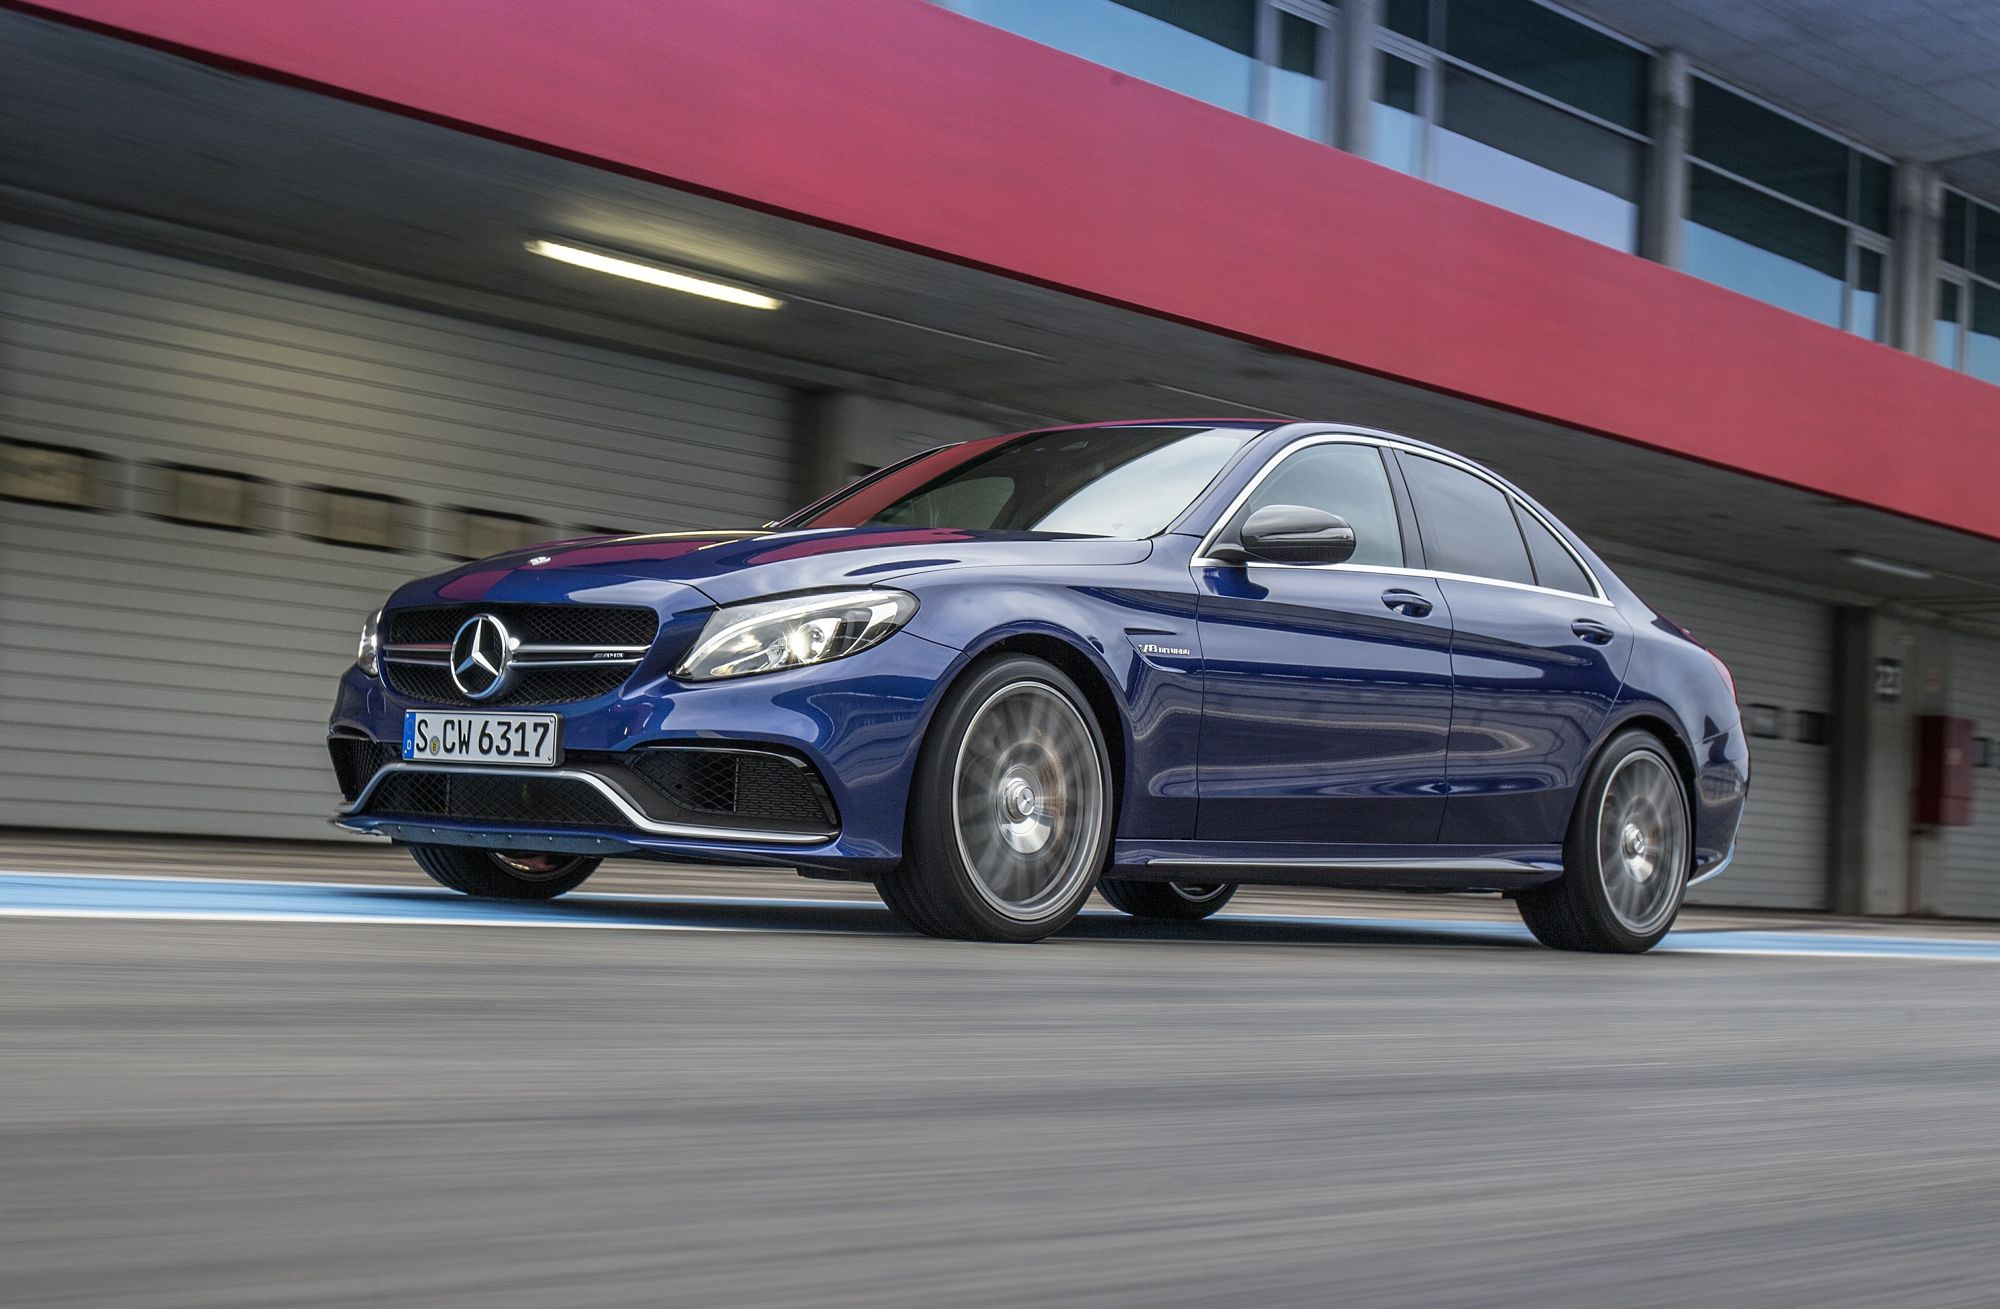 2015 mercedes amg c63 s review caradvice for Mercedes benz amg kit